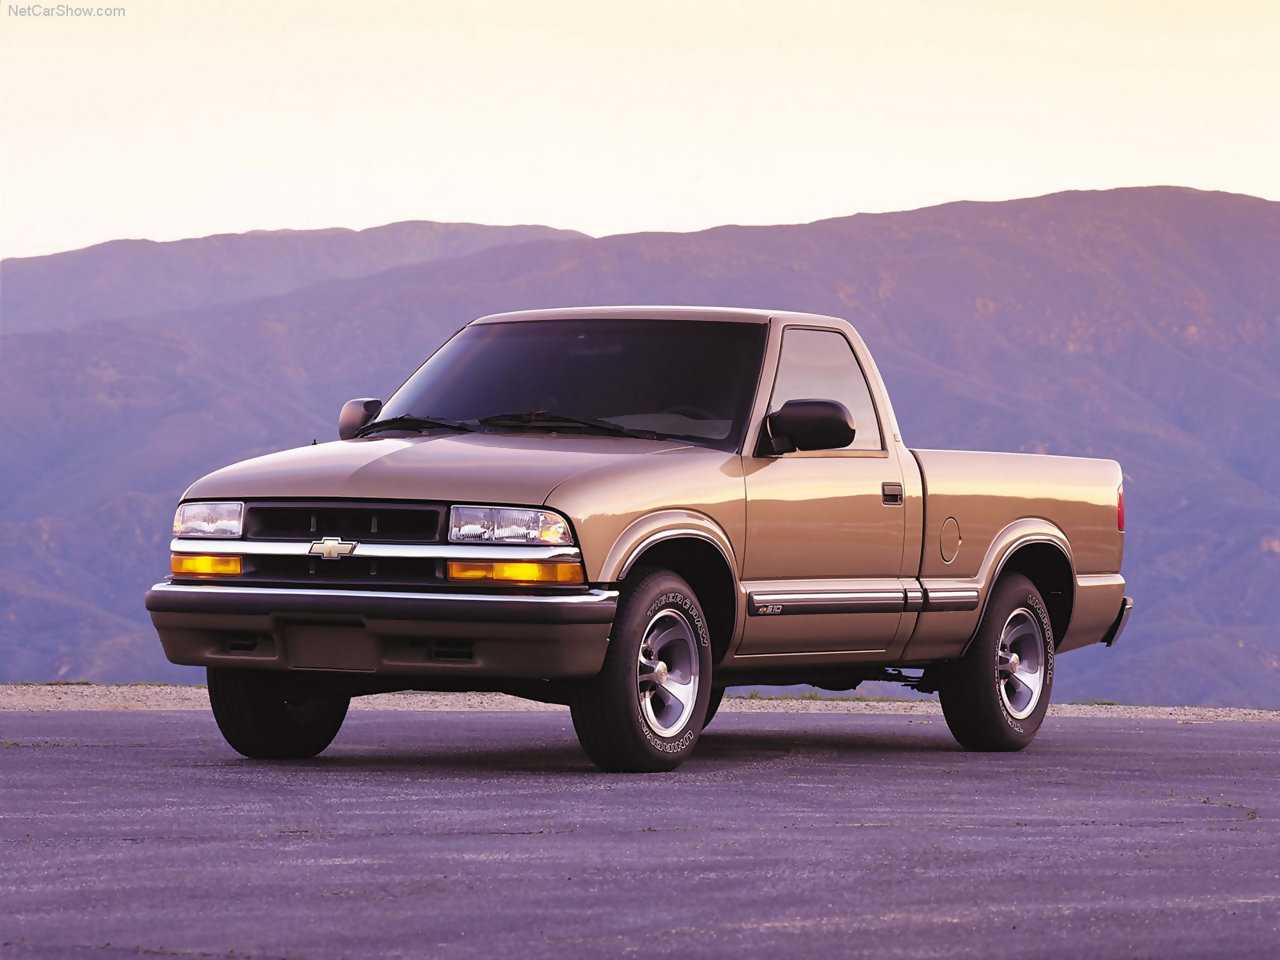 All Chevy 2000 chevrolet s-10 : Chevrolet S 10 2000: Review, Amazing Pictures and Images – Look at ...